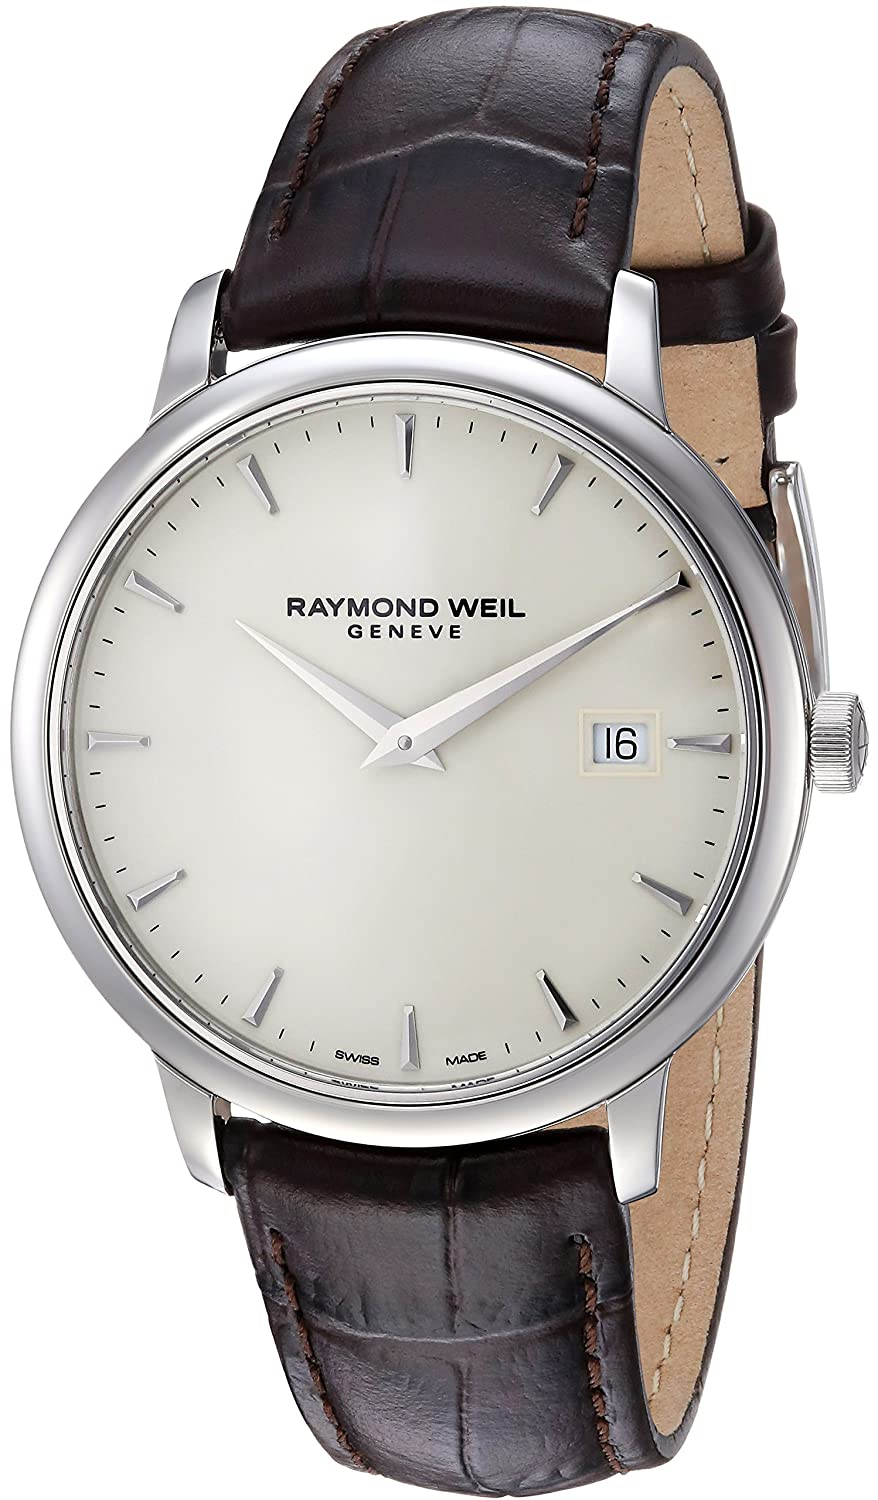 100c52023 Amazon.com: Raymond Weil Men's Toccata Stainless Steel Quartz Watch with Leather  Strap, Brown, 17 (Model: 5488-STC-40001): Watches